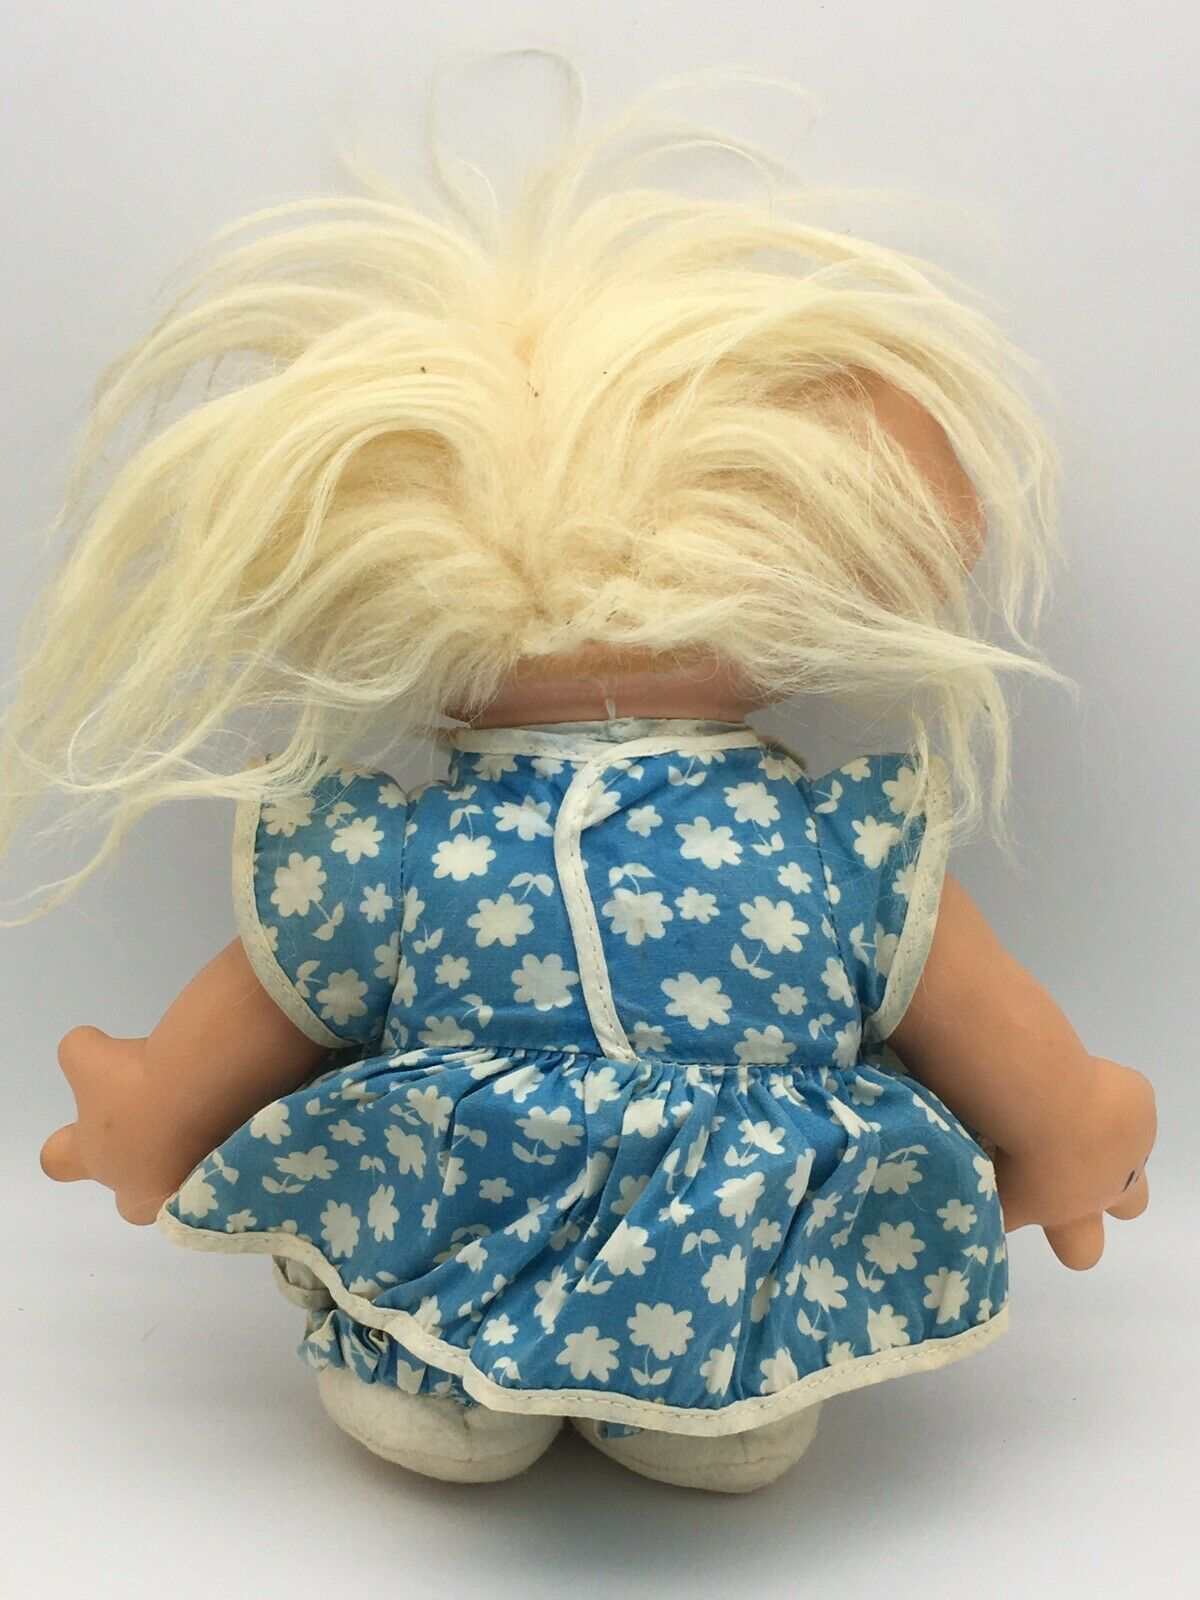 Vintage Scandia House Troll Doll Vinyl Head Cloth Body 1960s 11""